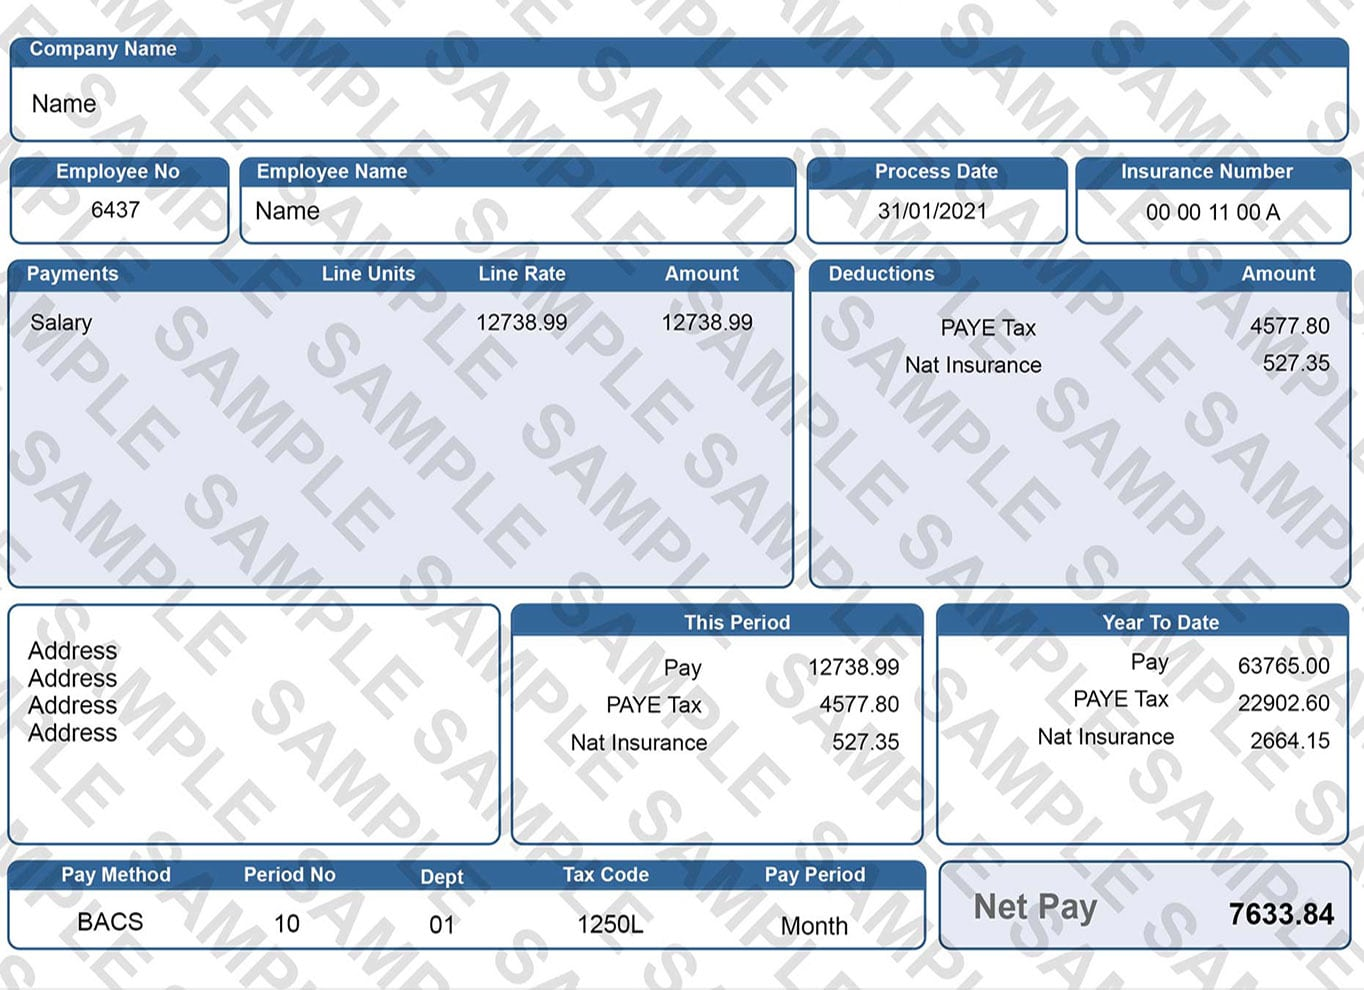 Blue Digital Replacement Payslip